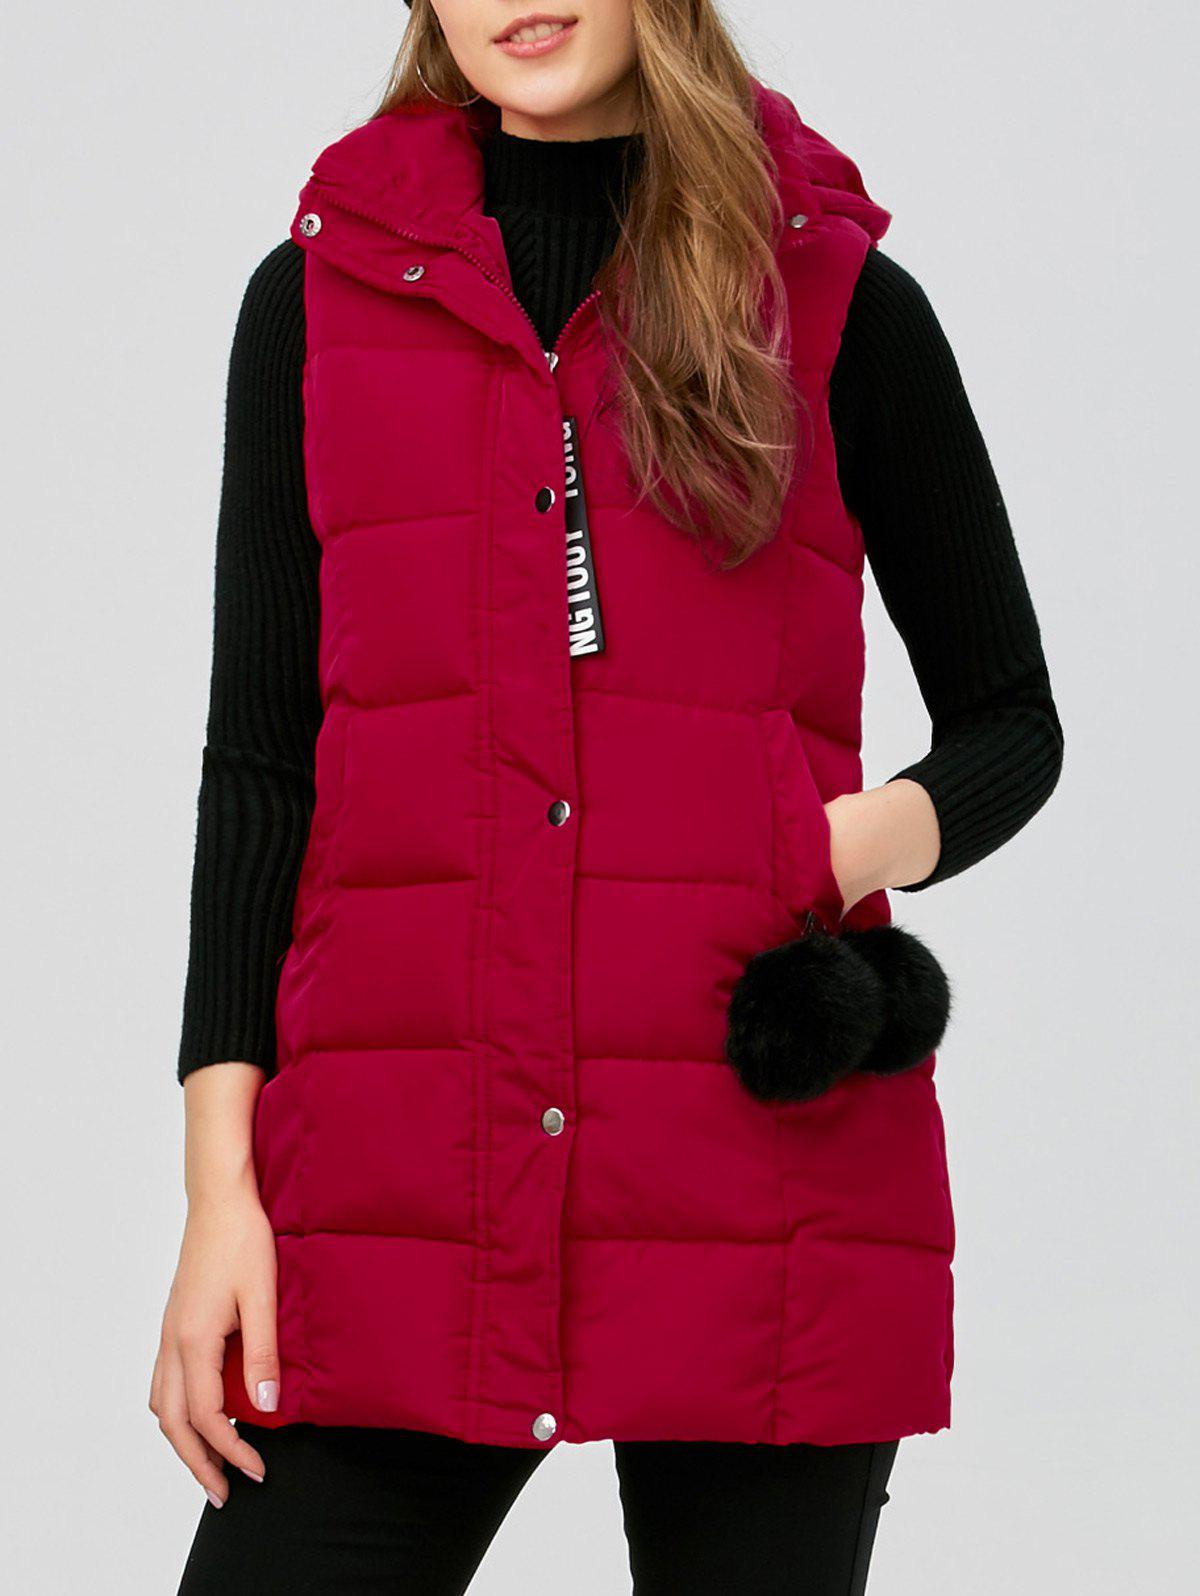 Zip Fly Long Hooded Down Vest - RED M